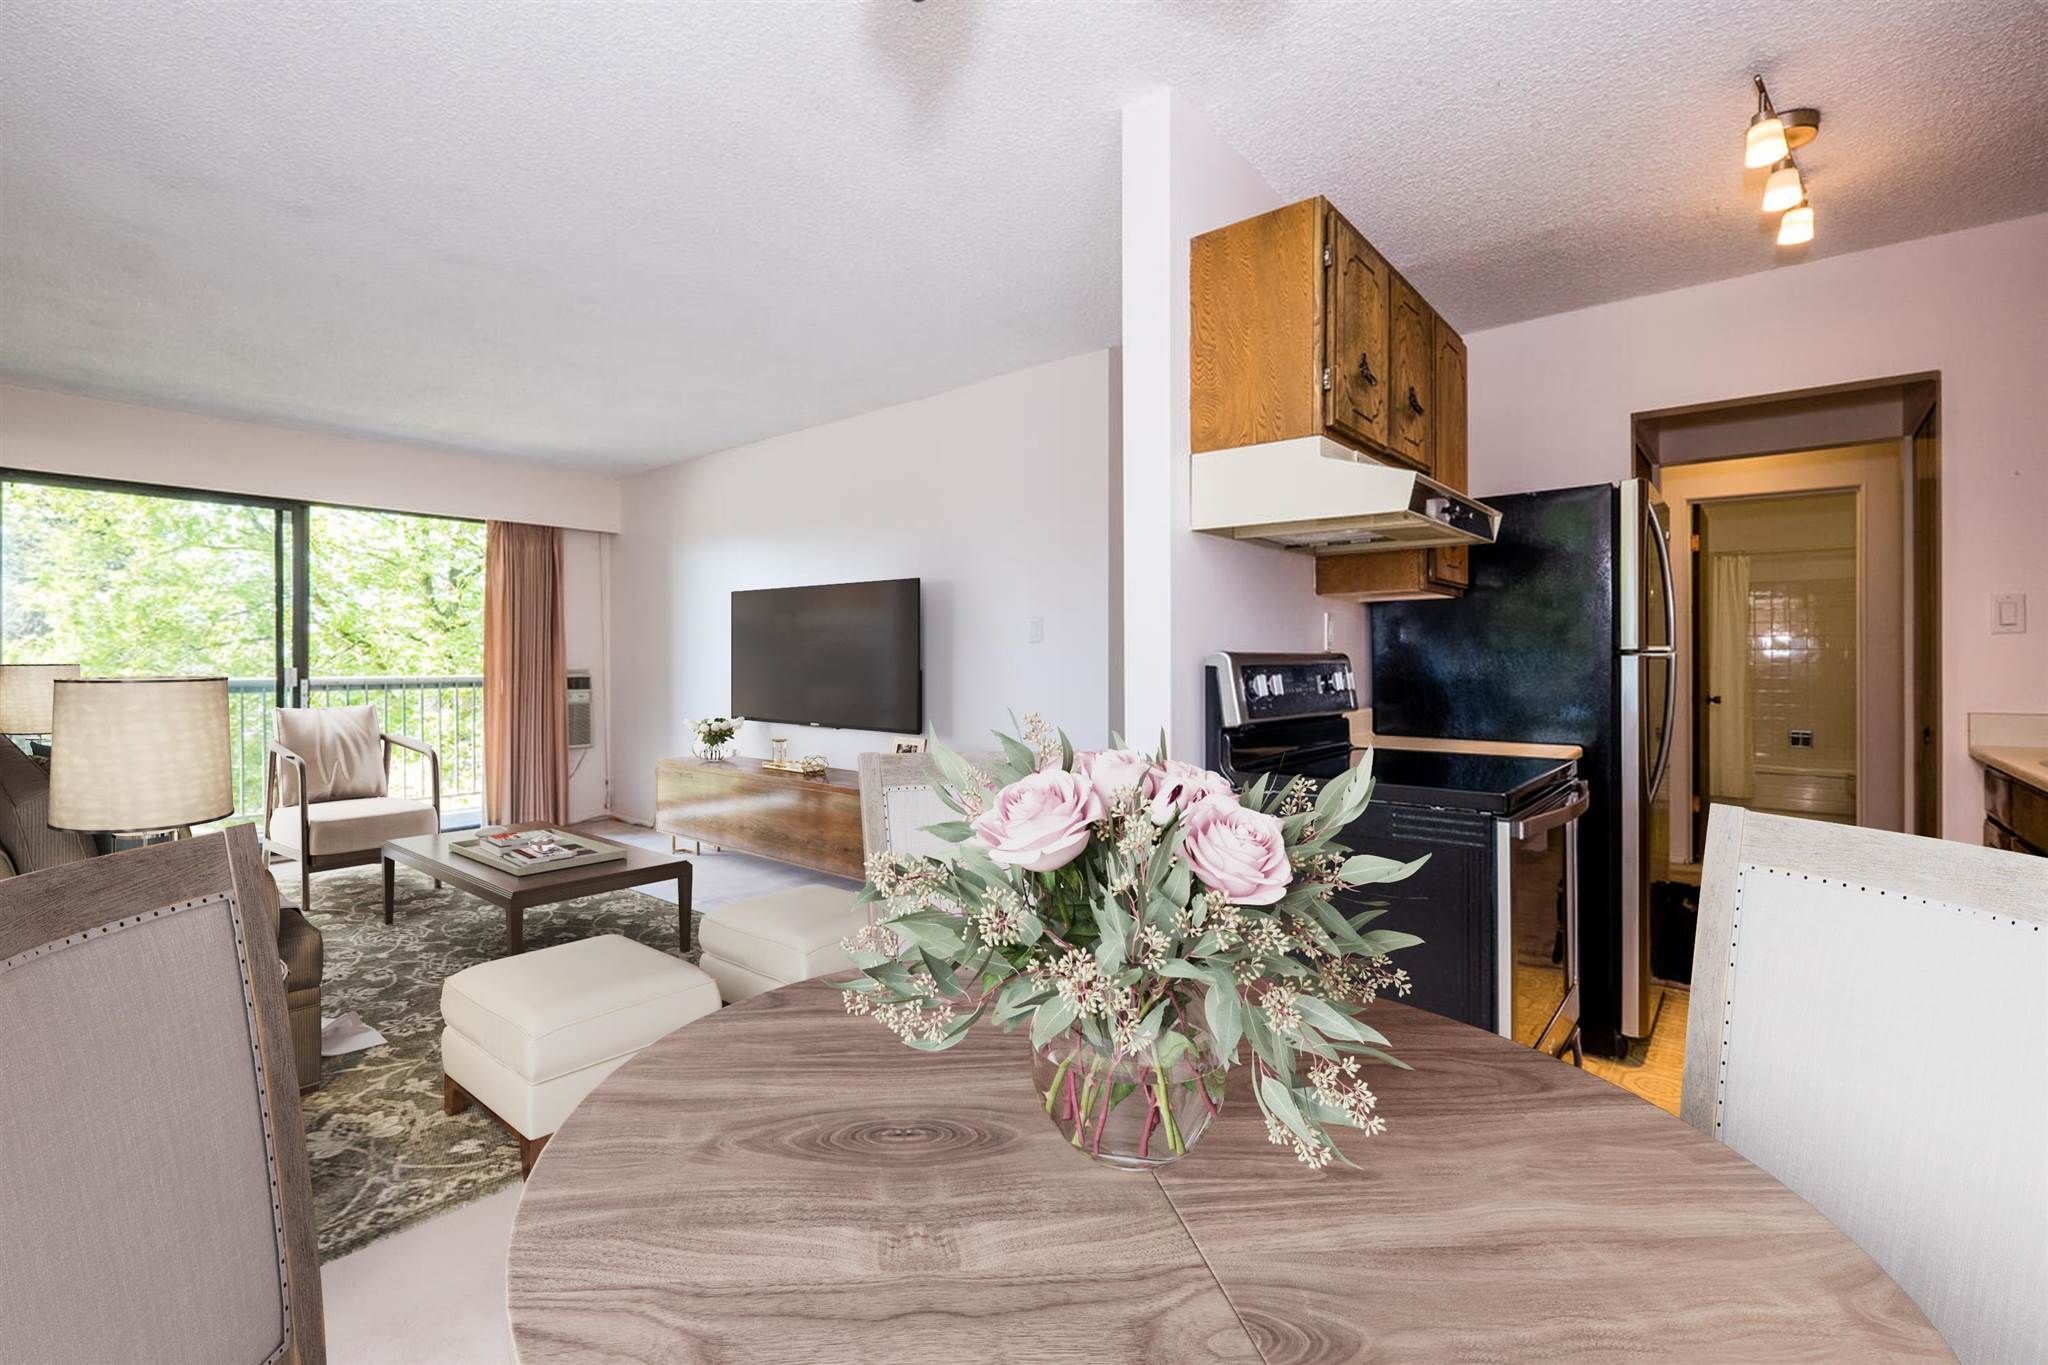 """Photo 7: Photos: 209 2600 E 49TH Avenue in Vancouver: Killarney VE Condo for sale in """"Southwinds"""" (Vancouver East)  : MLS®# R2600173"""